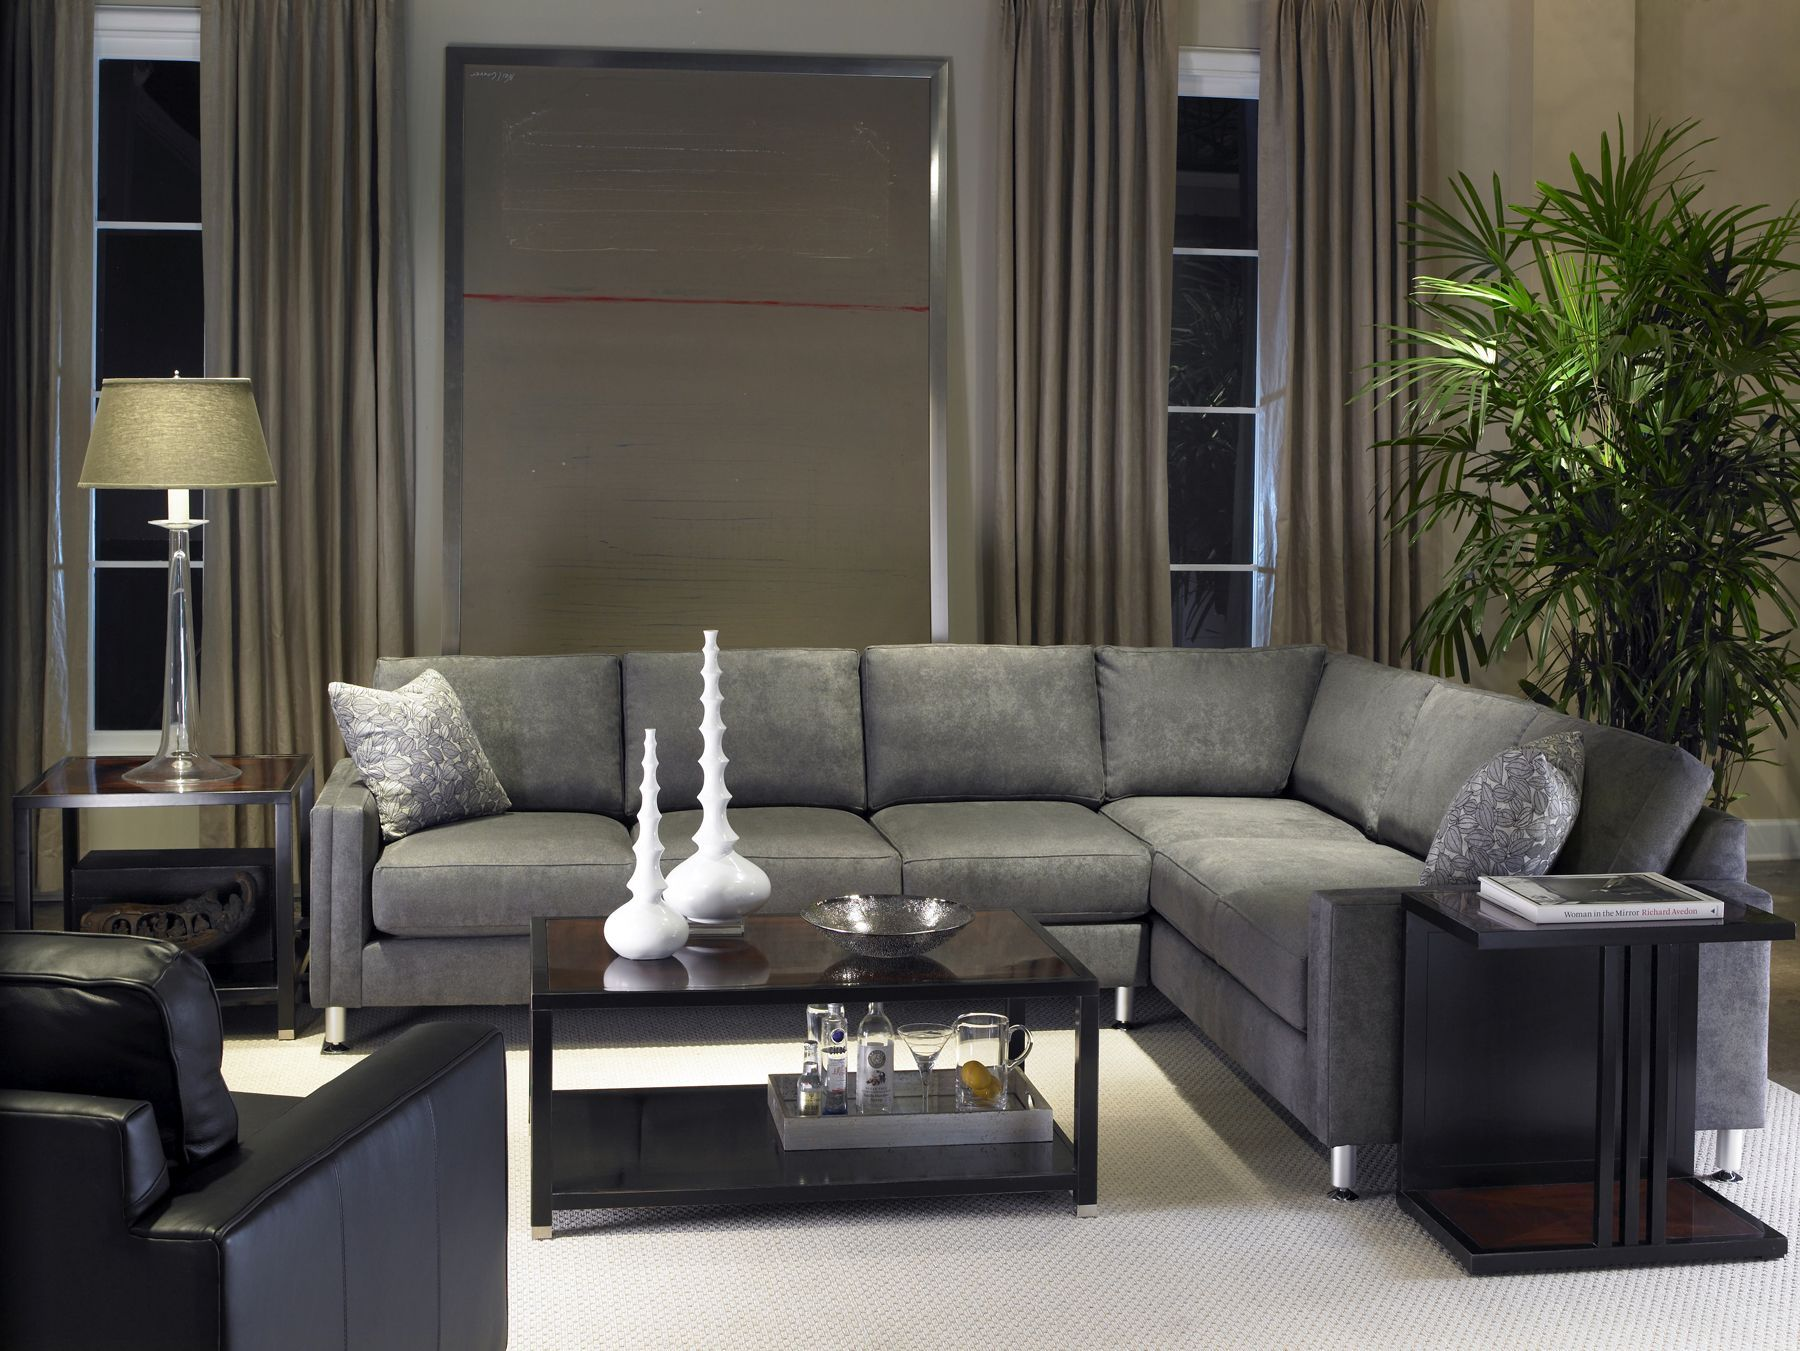 We Love These Sky High Window Panels Paired With A Low Lying Sectional Sofa